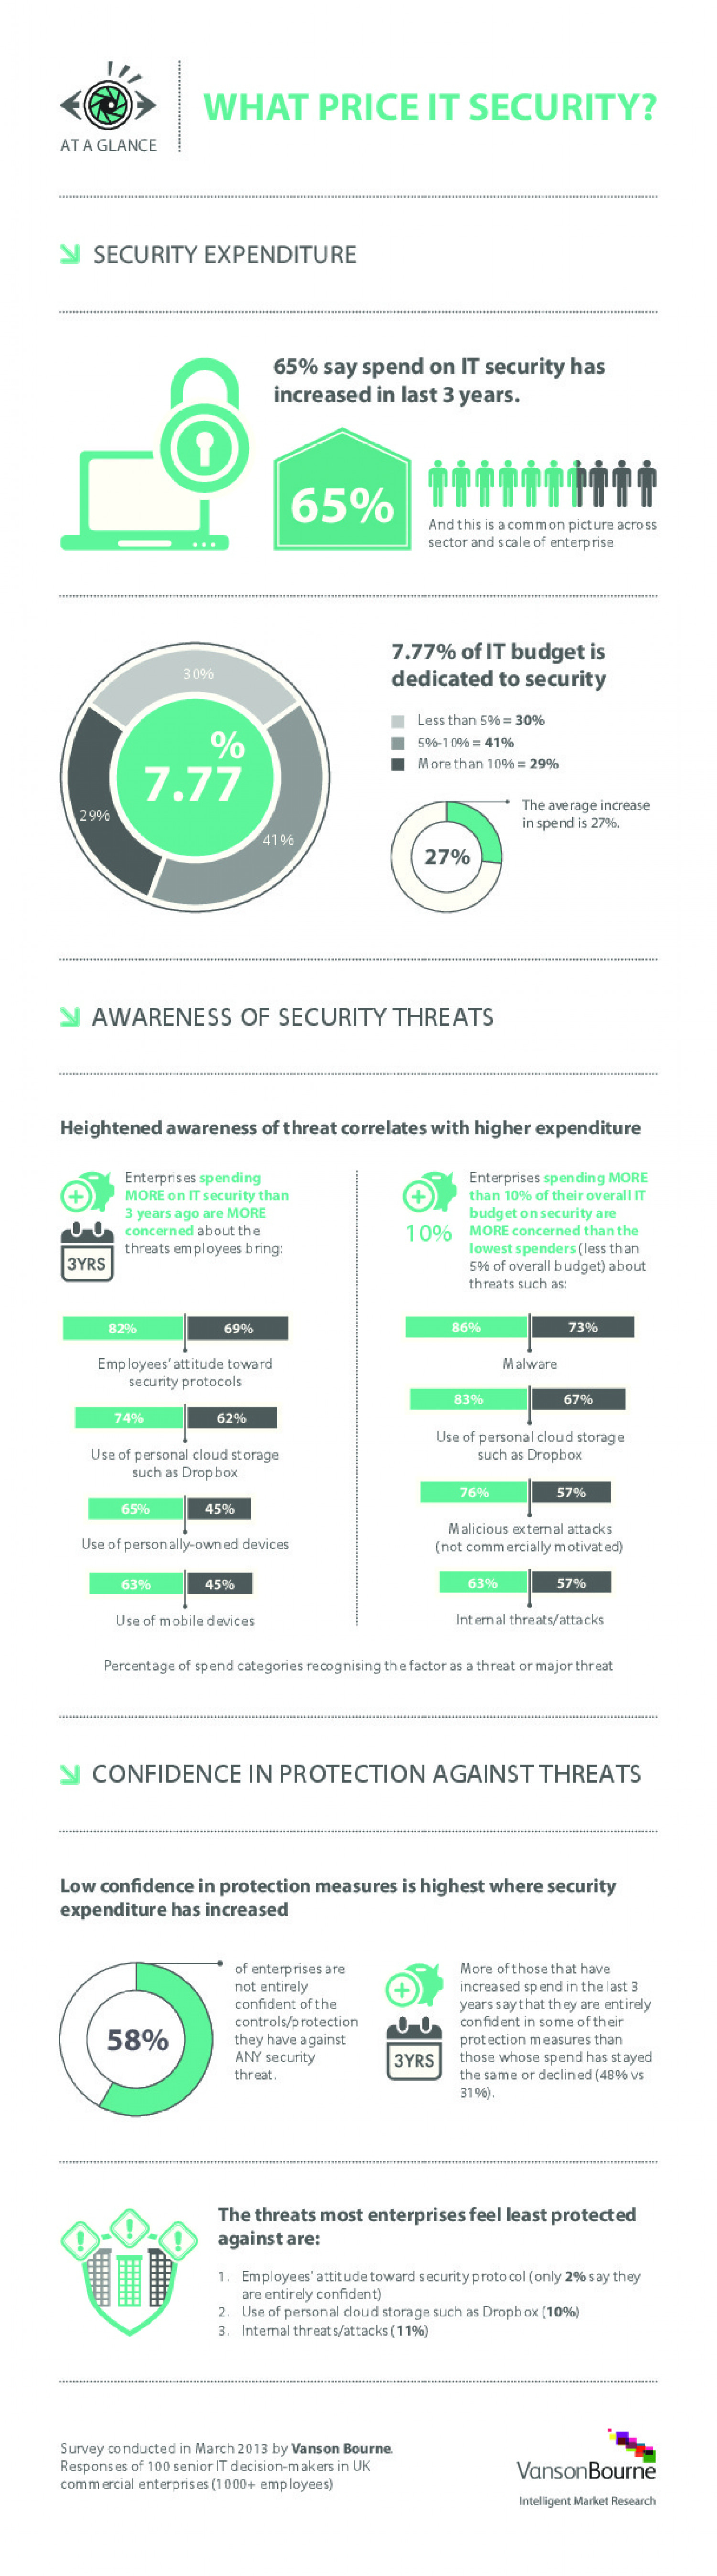 What price IT Security? Infographic